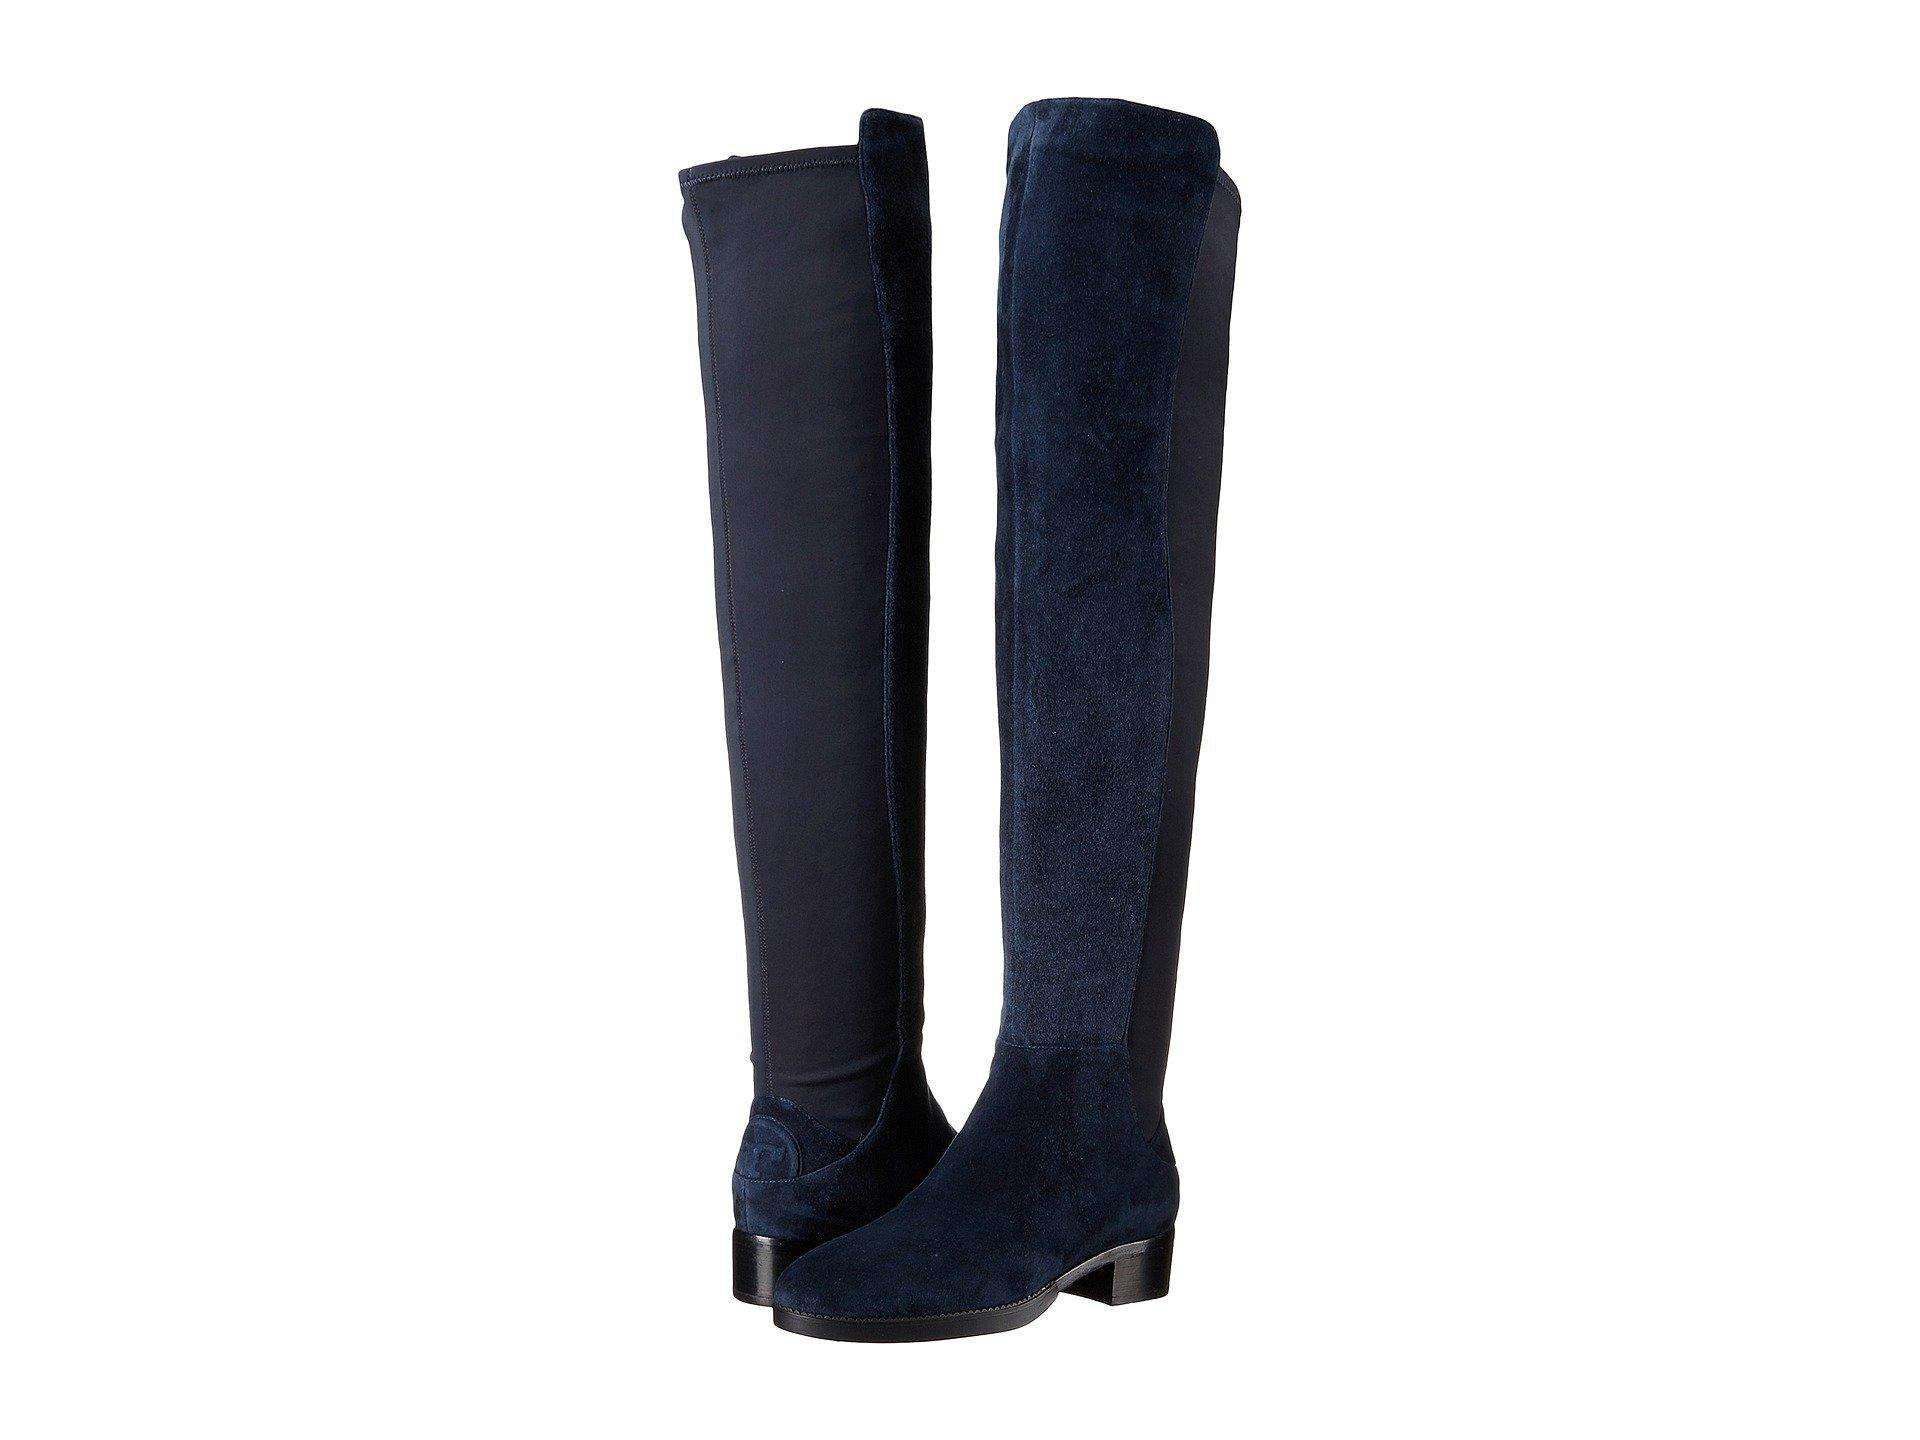 5f15a8c55 Tory Burch Caitlin Stretch Over-The-Knee Boot In Royal Navy